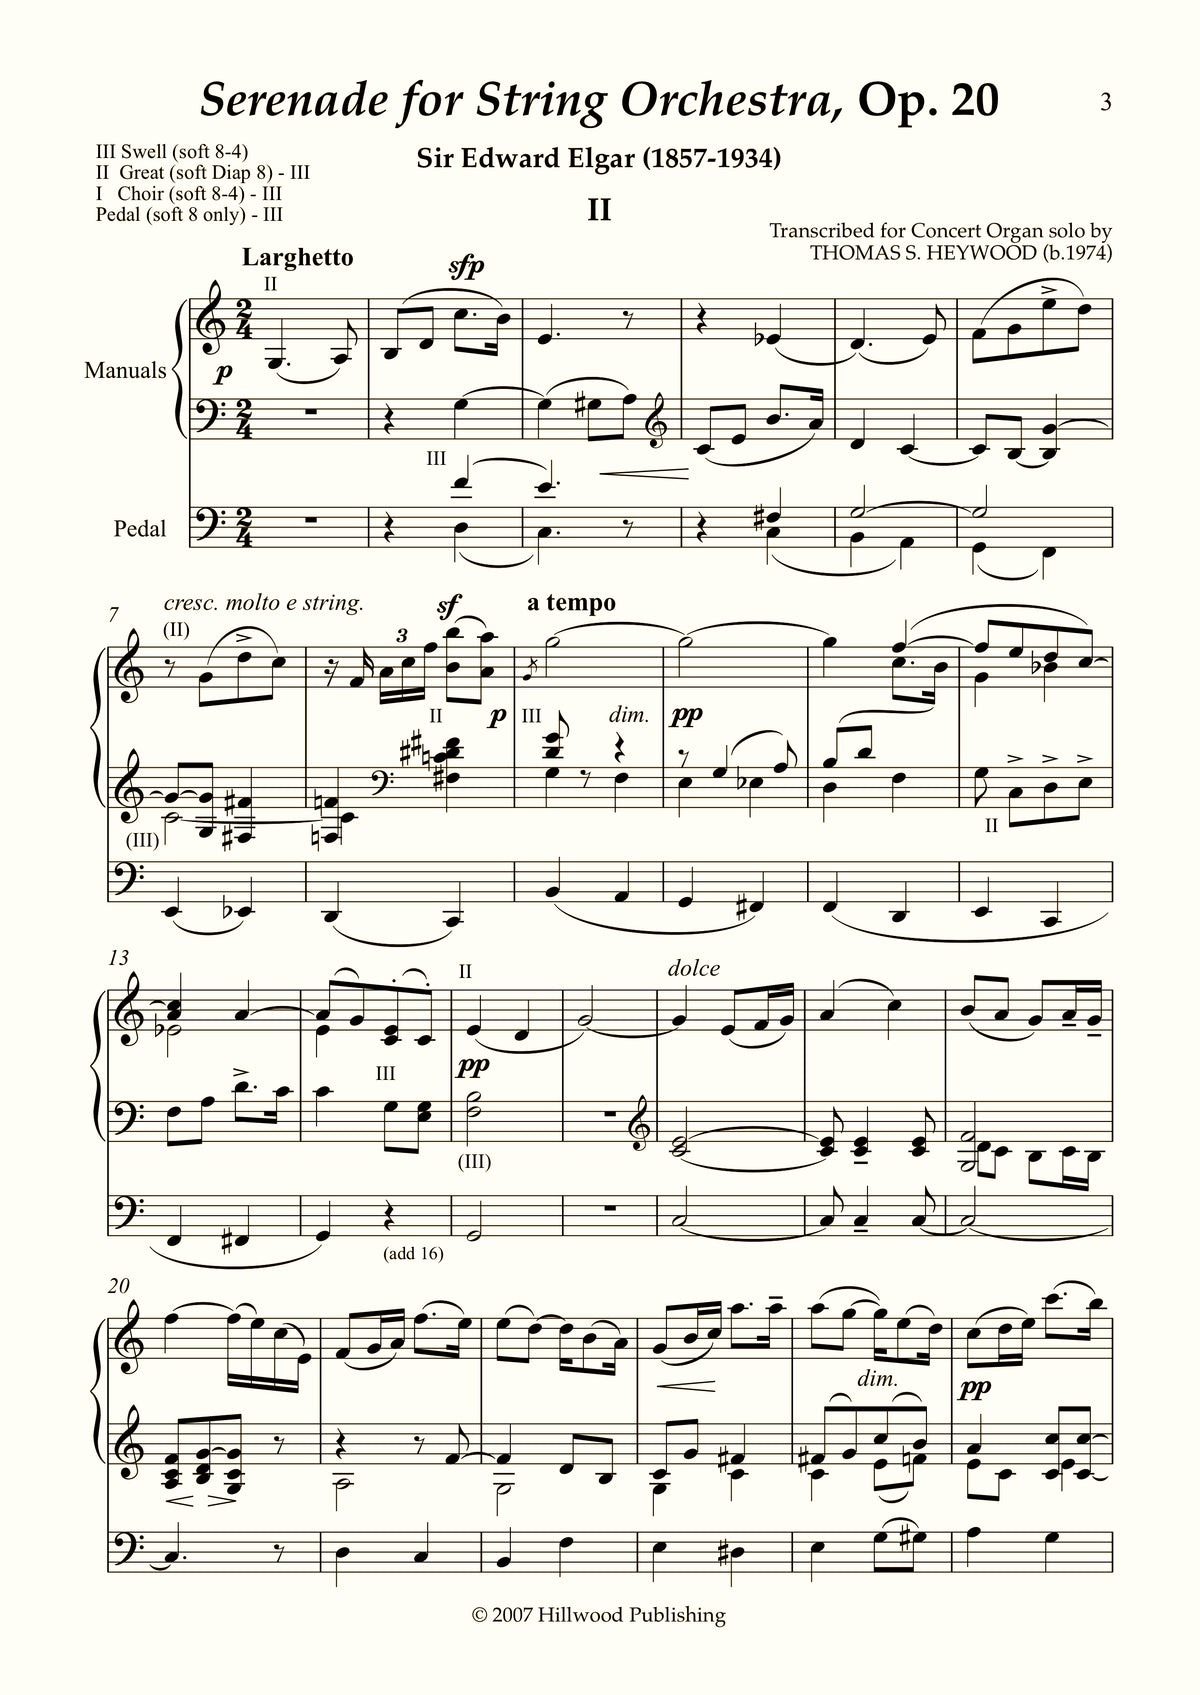 Elgar/Heywood - Larghetto from Serenade for String Orchestra, Op. 20 (Score)